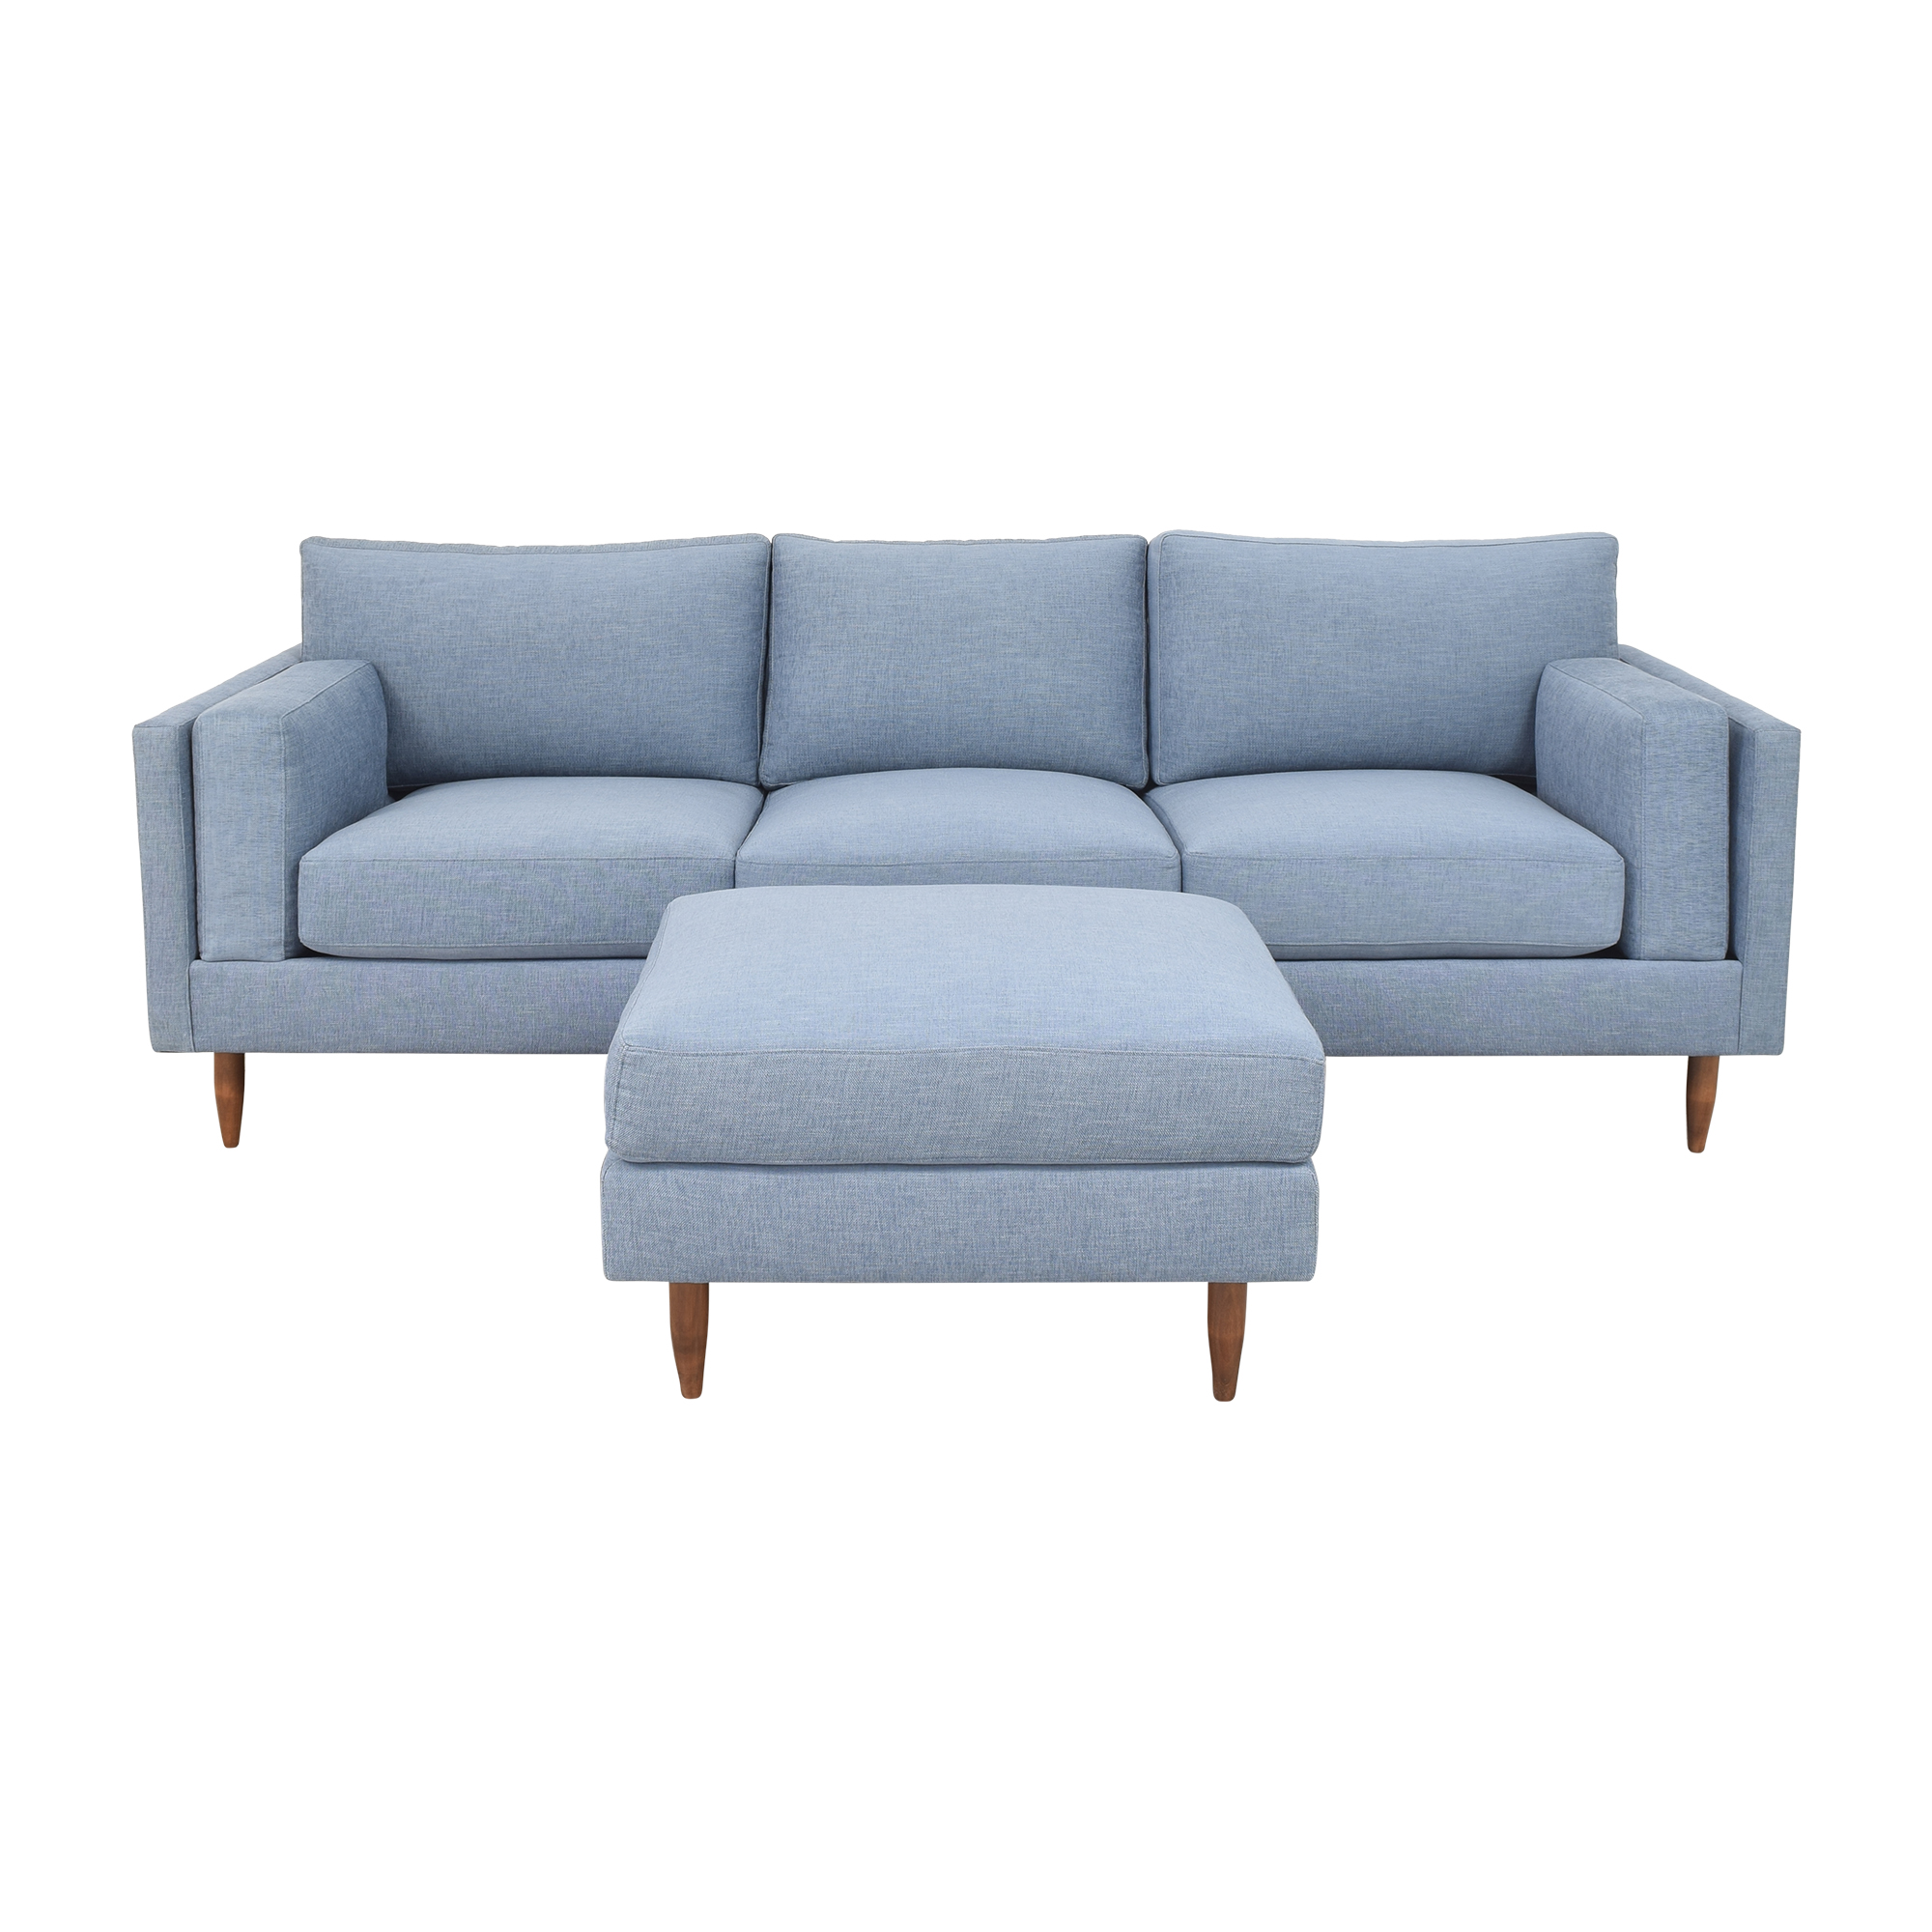 BenchMade Modern BenchMade Modern Skinny Fat Sofa with Ottoman on sale